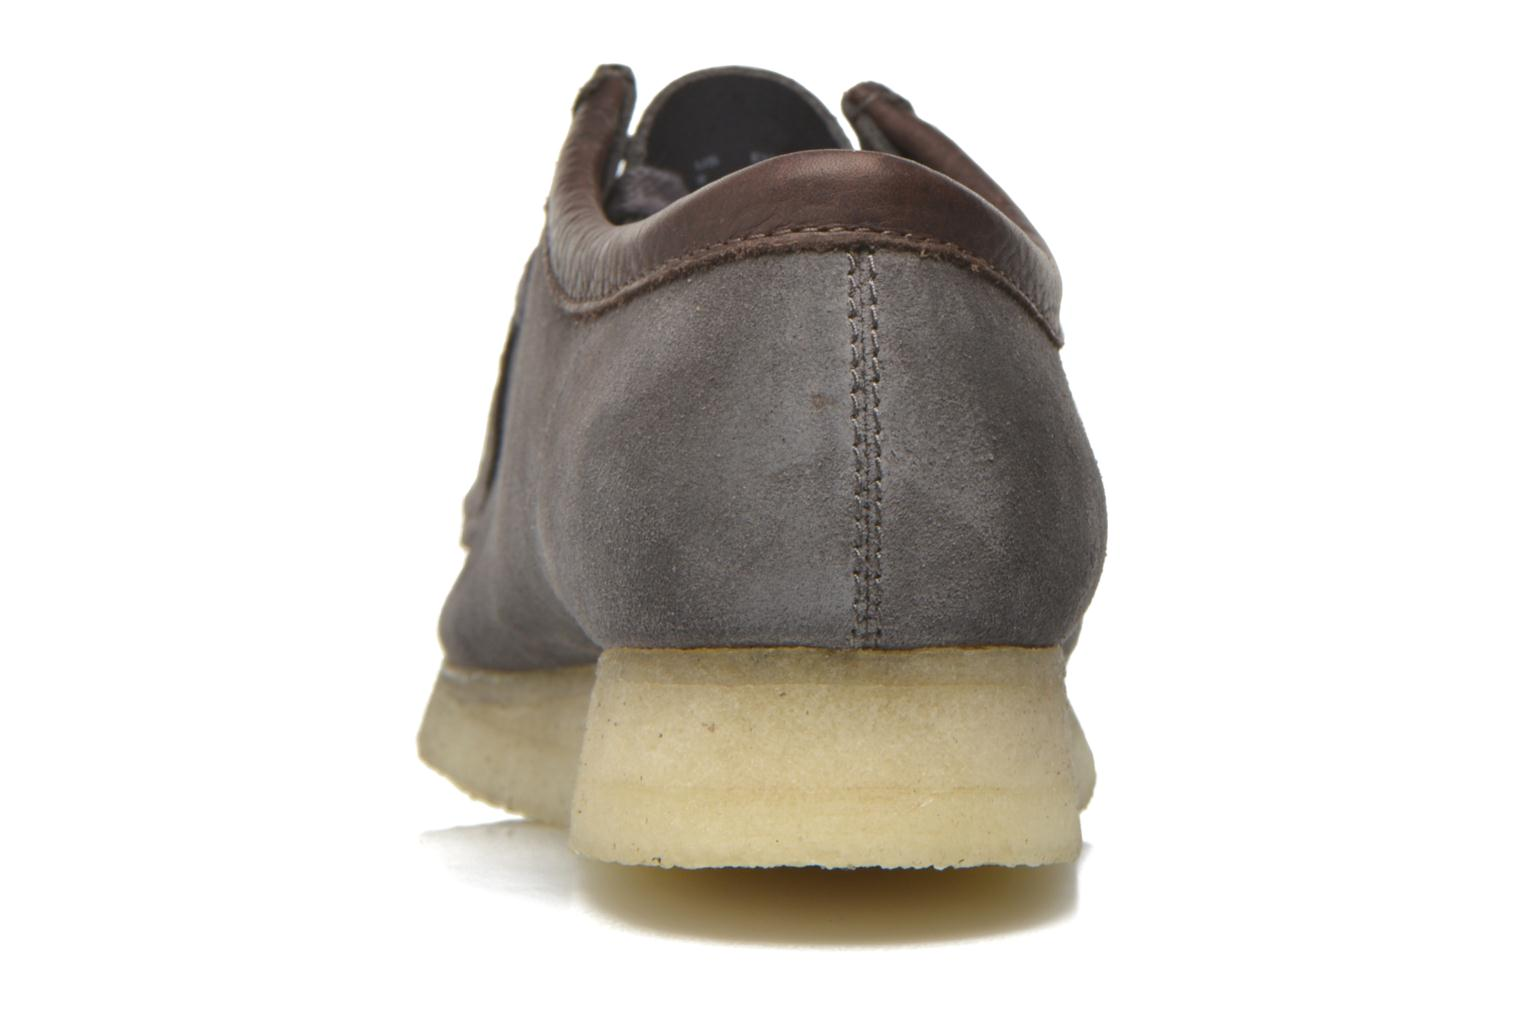 Wallabee Charcoal suede